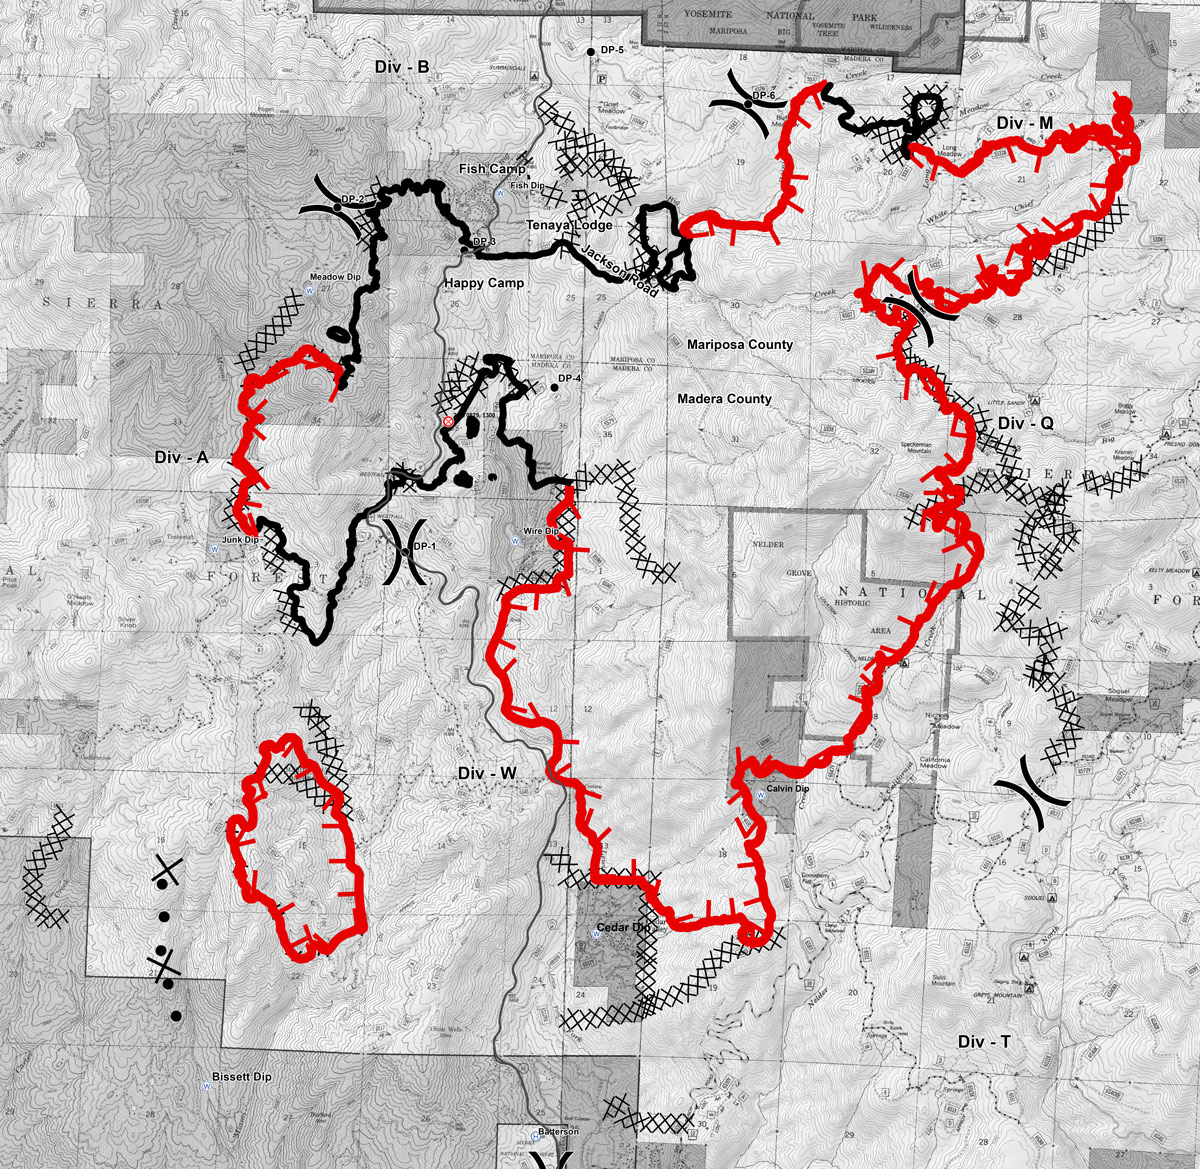 Railroad Fire In Madera And Mariposa Counties Perimeter Map For